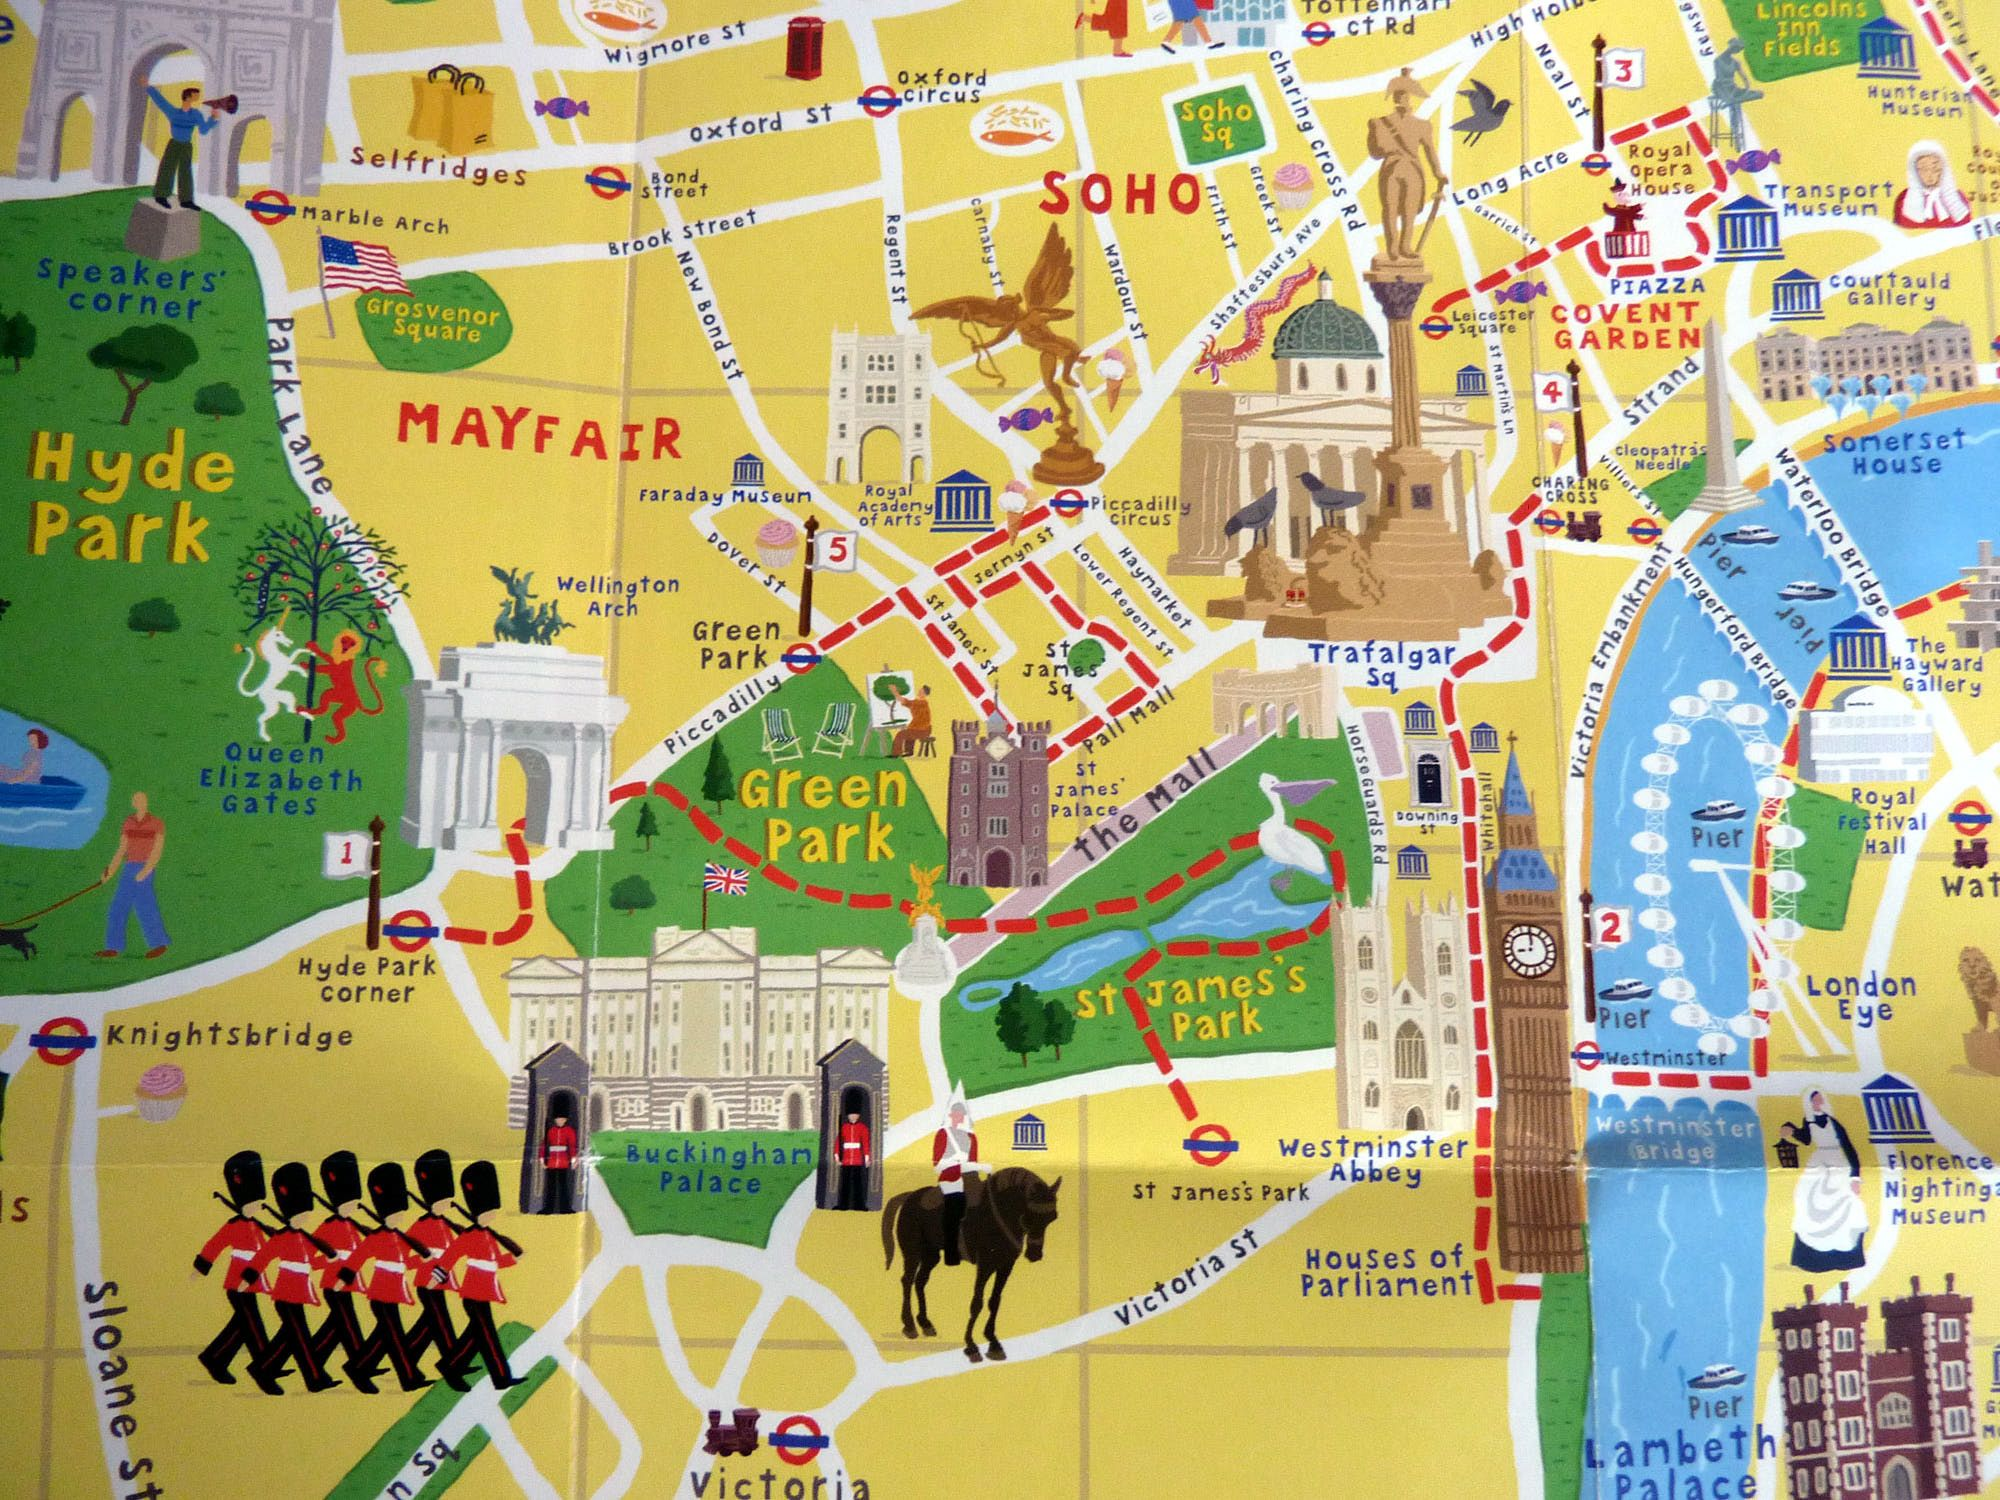 London Sight seeing Map Pinterest Search